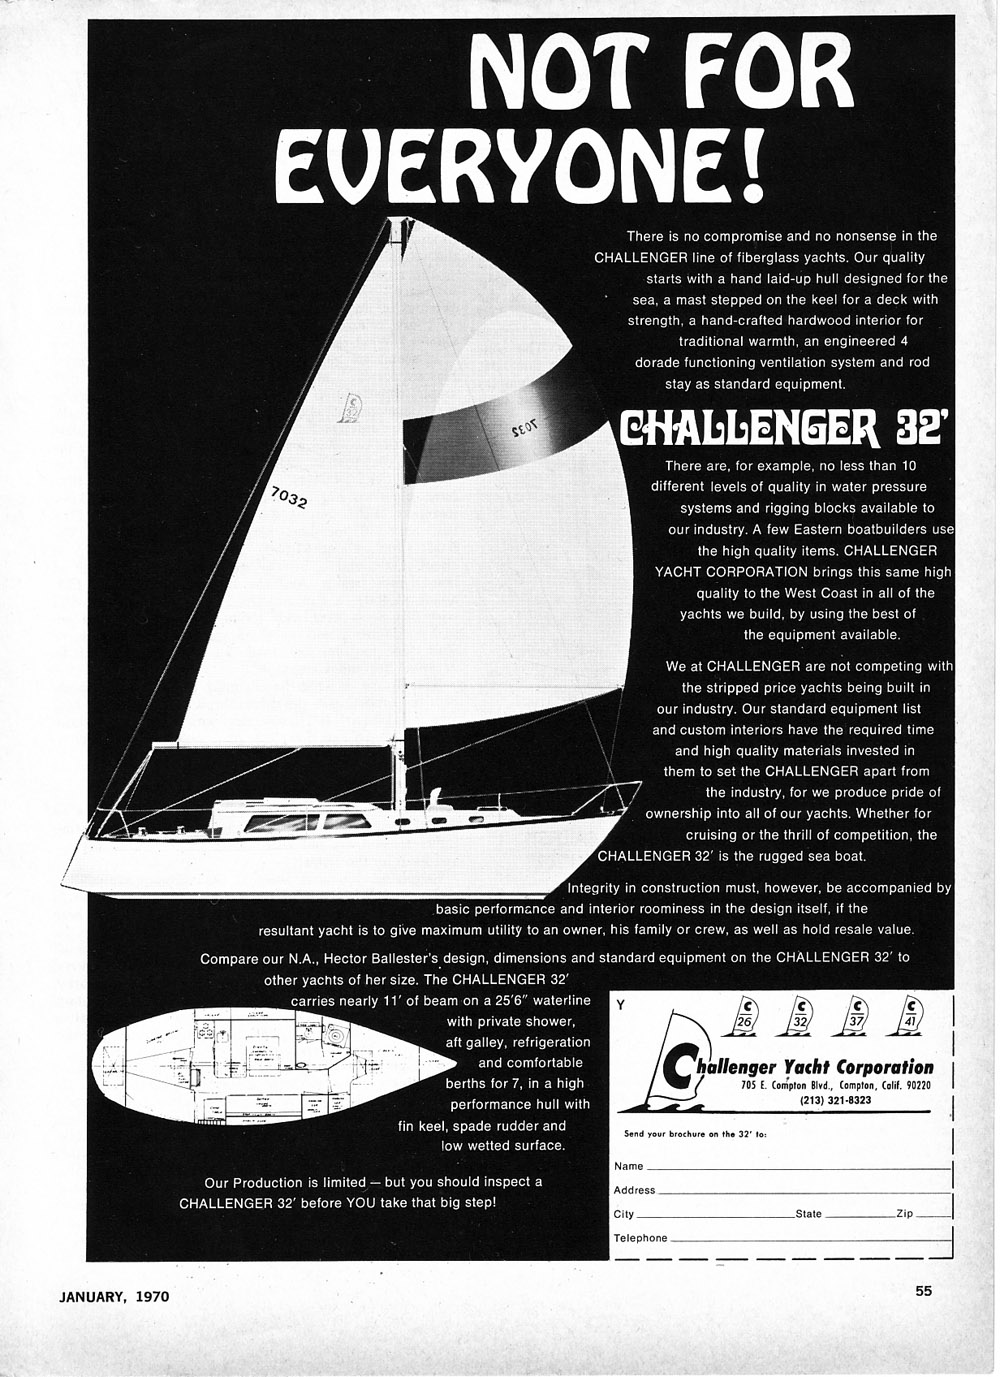 Click image for larger version  Name:Challenger ad 1b.jpg Views:191 Size:334.9 KB ID:5811